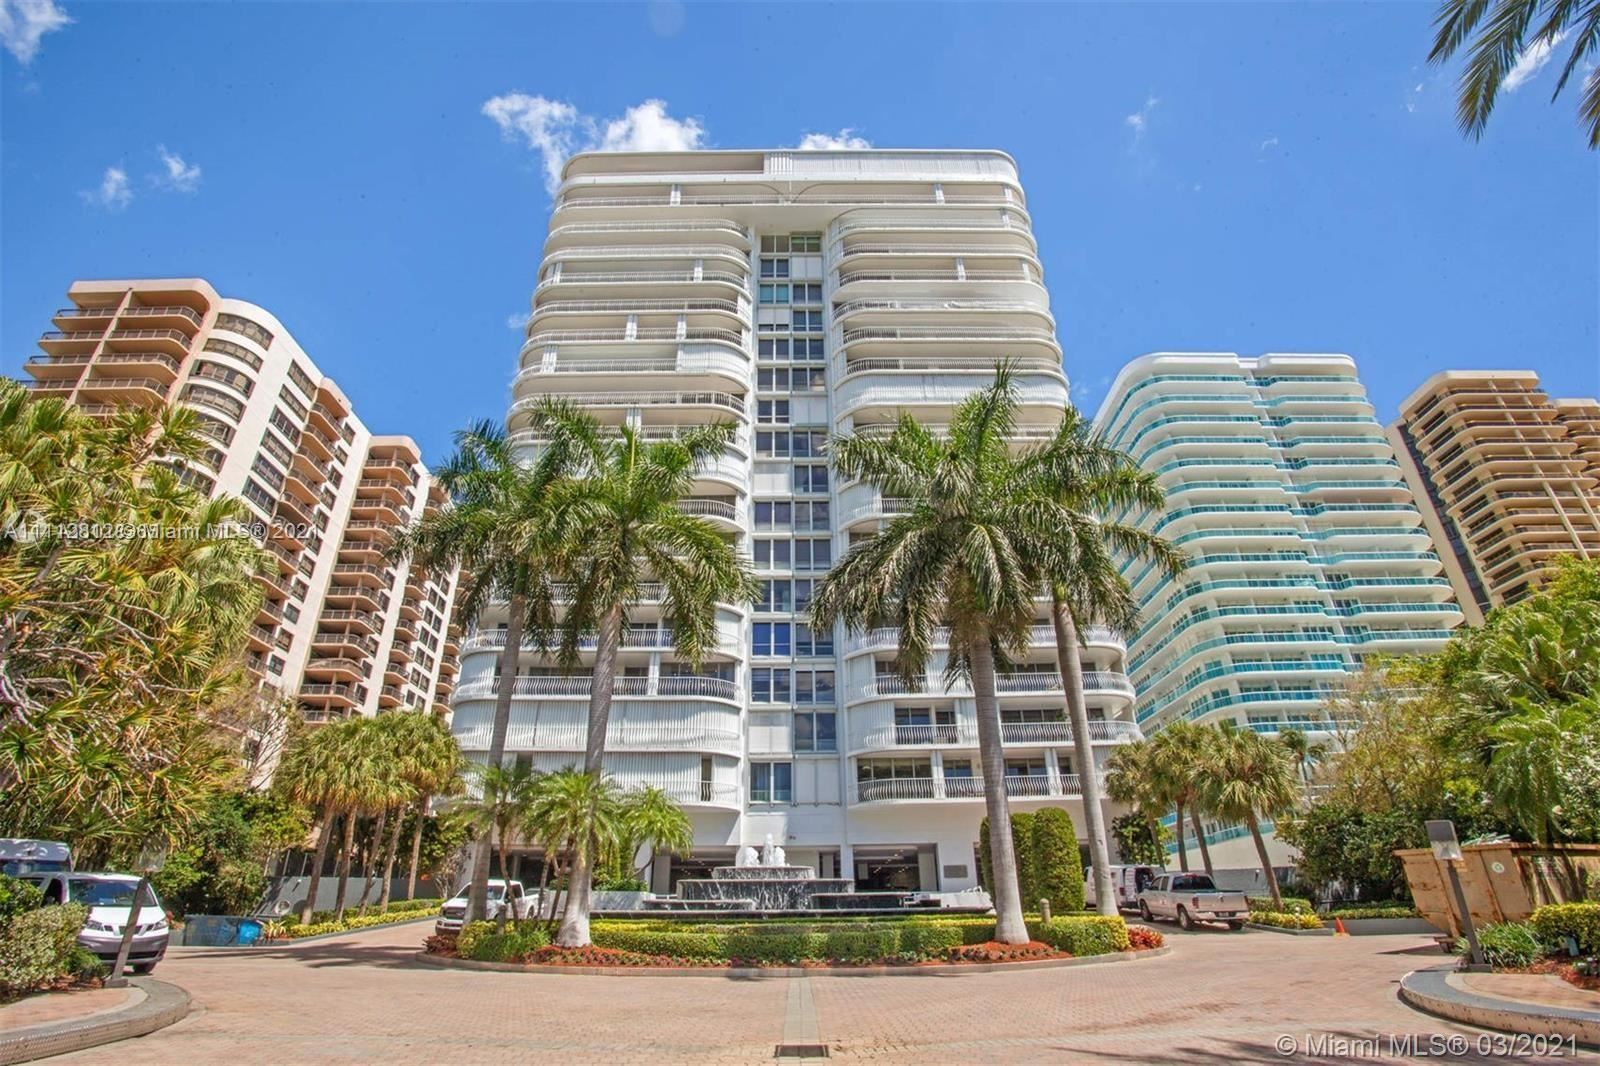 Photo of 10155 Collins Ave #806, Bal Harbour, FL 33154 (MLS # A11112812)